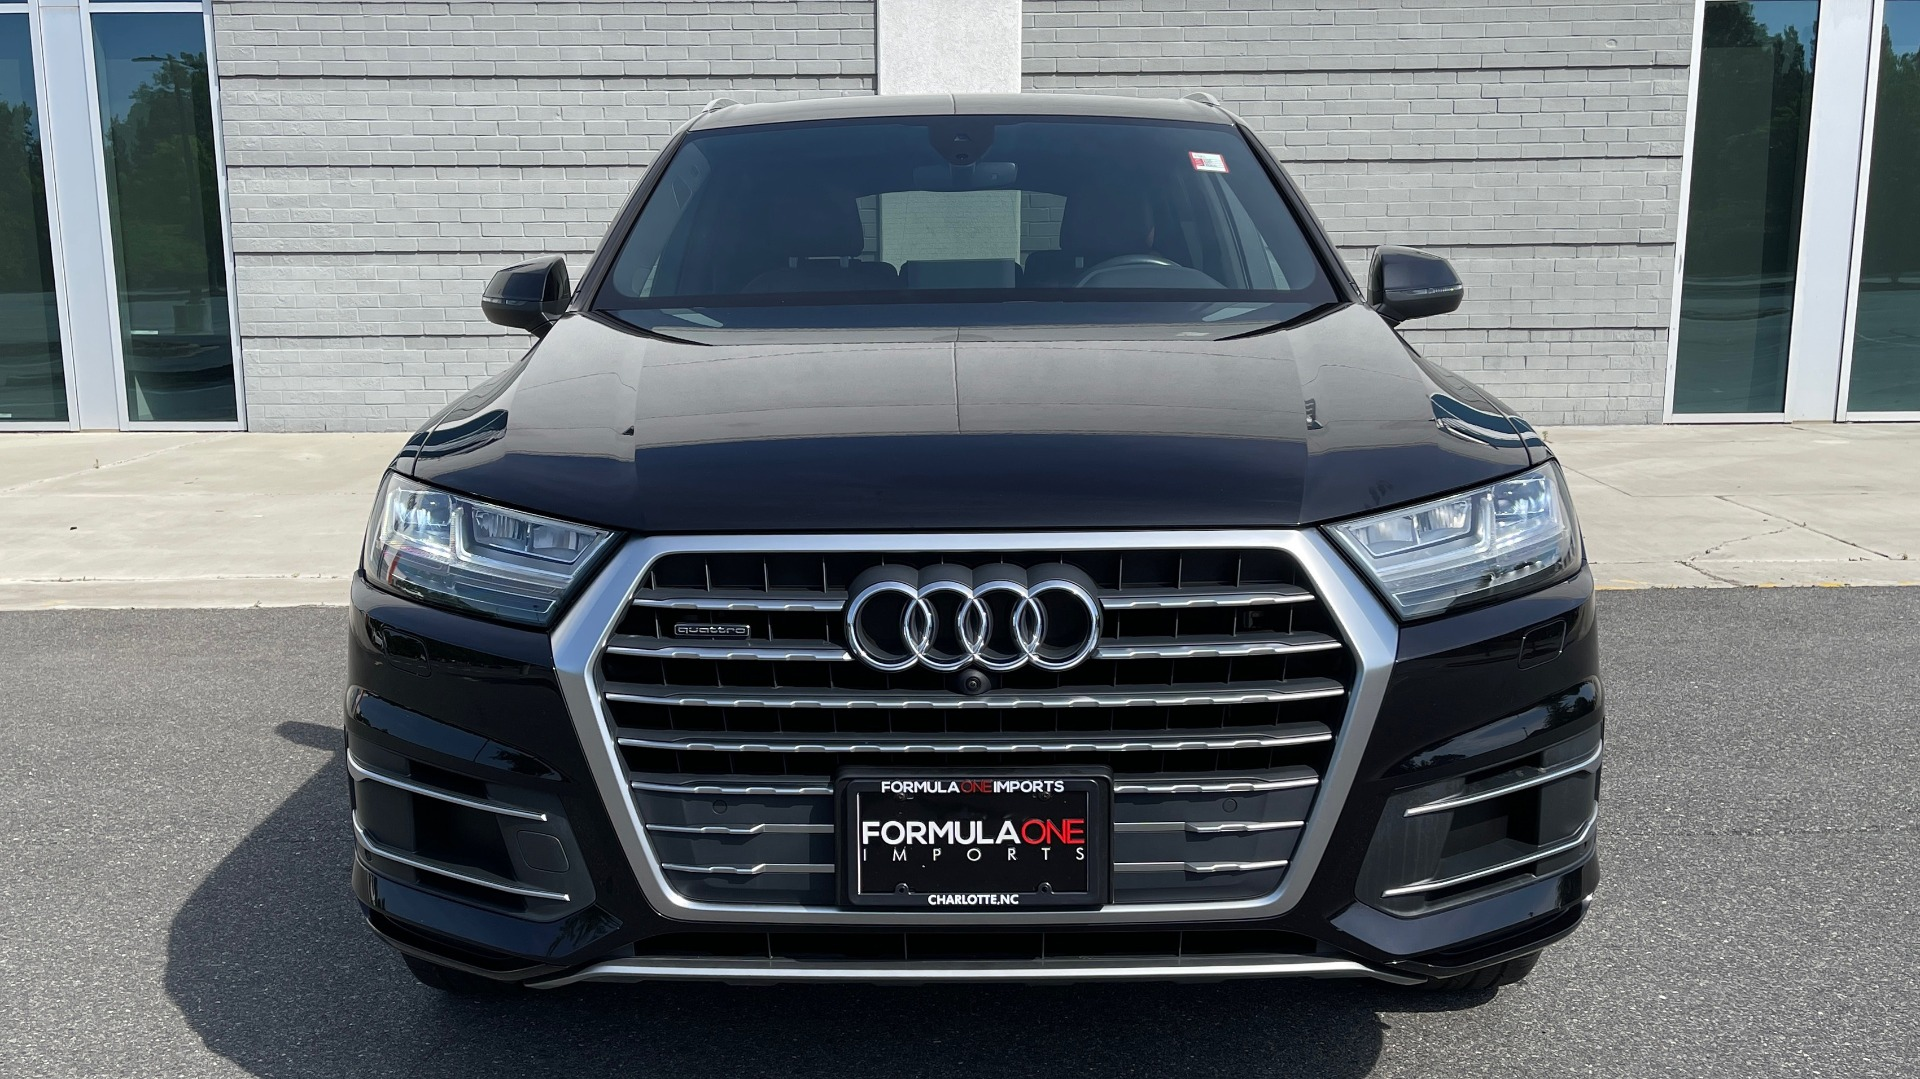 Used 2018 Audi Q7 PREMIUM PLUS / NAV / PANO-ROOF / BOSE / 3-ROW / REARVIEW for sale $43,461 at Formula Imports in Charlotte NC 28227 12